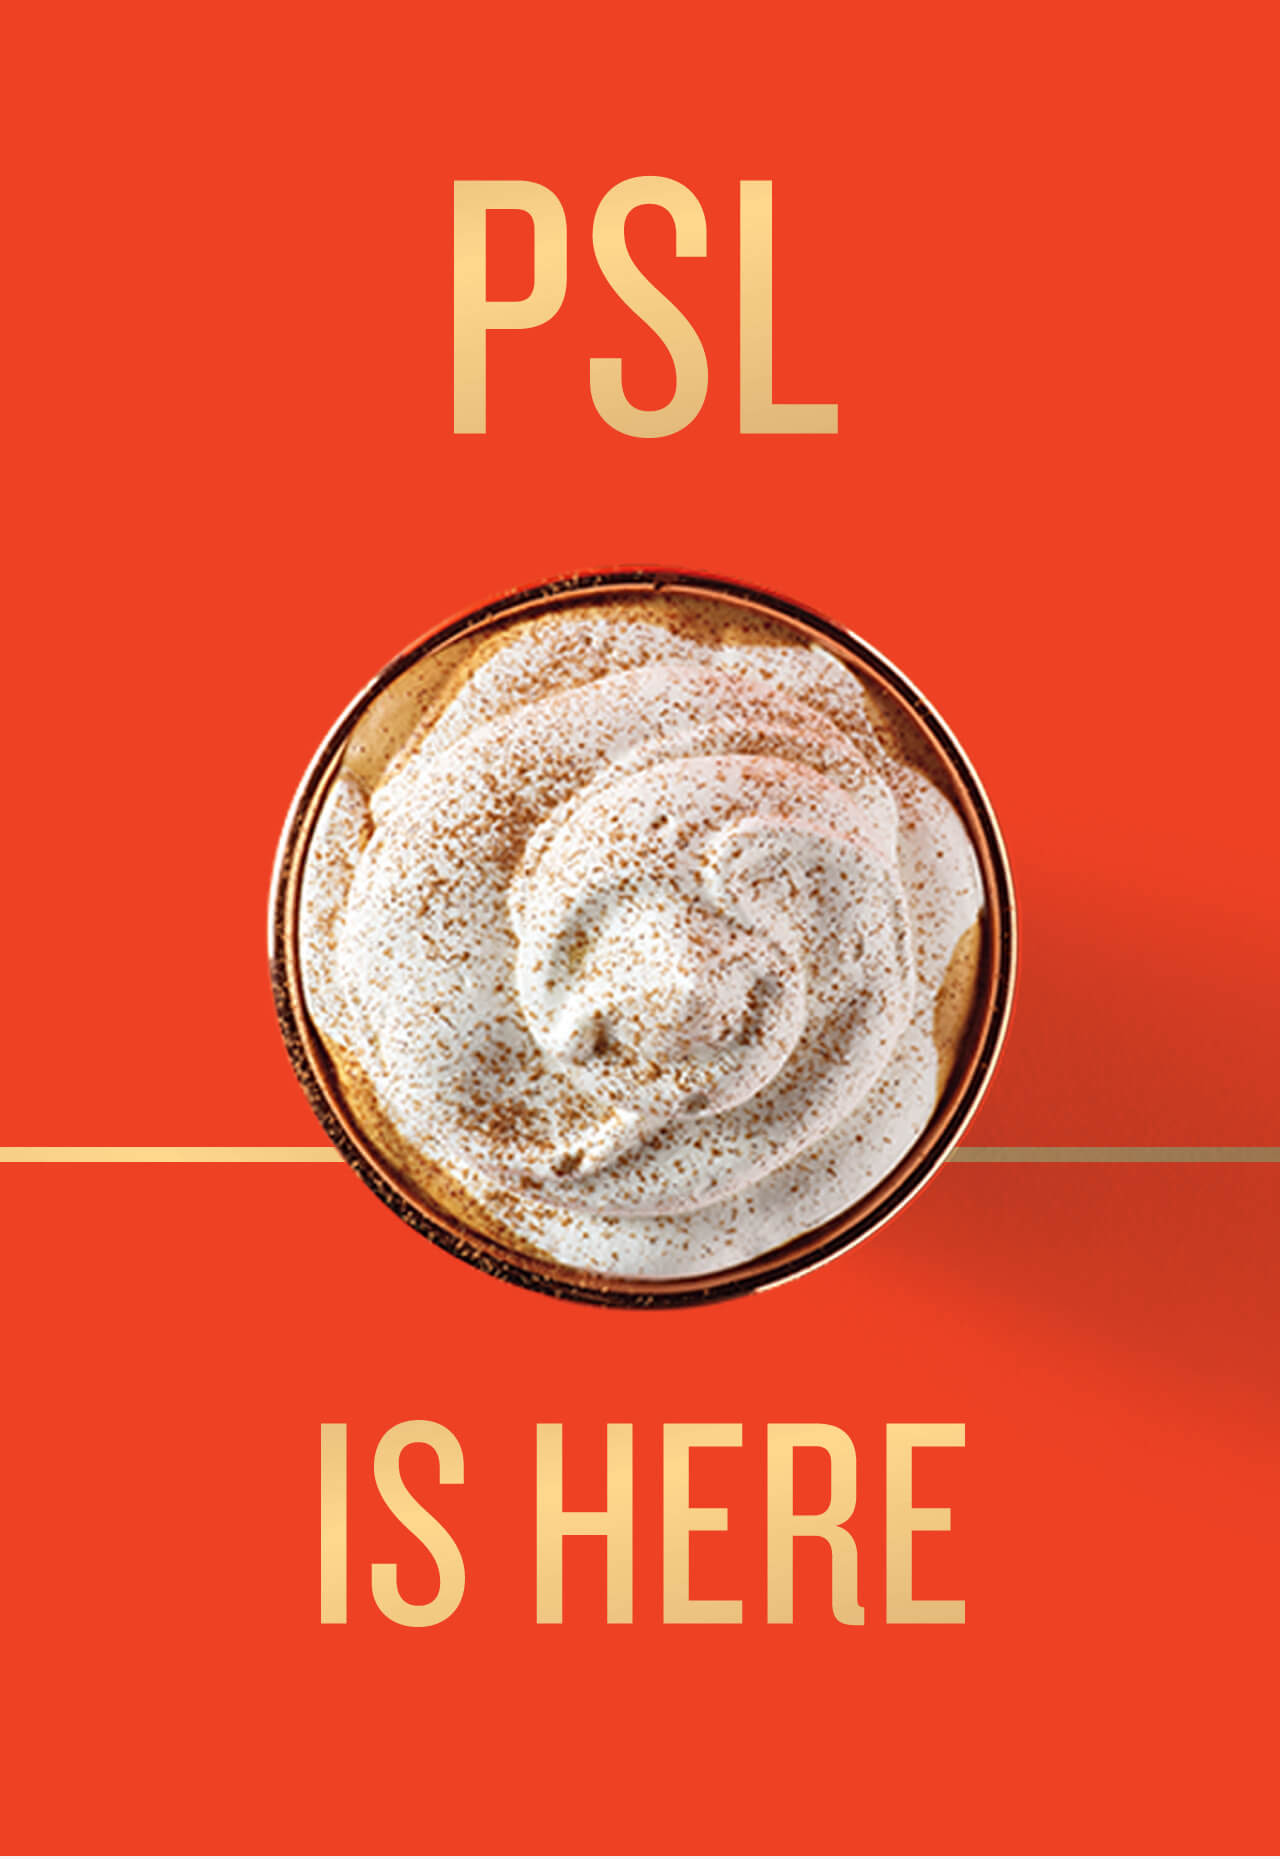 PSL is here